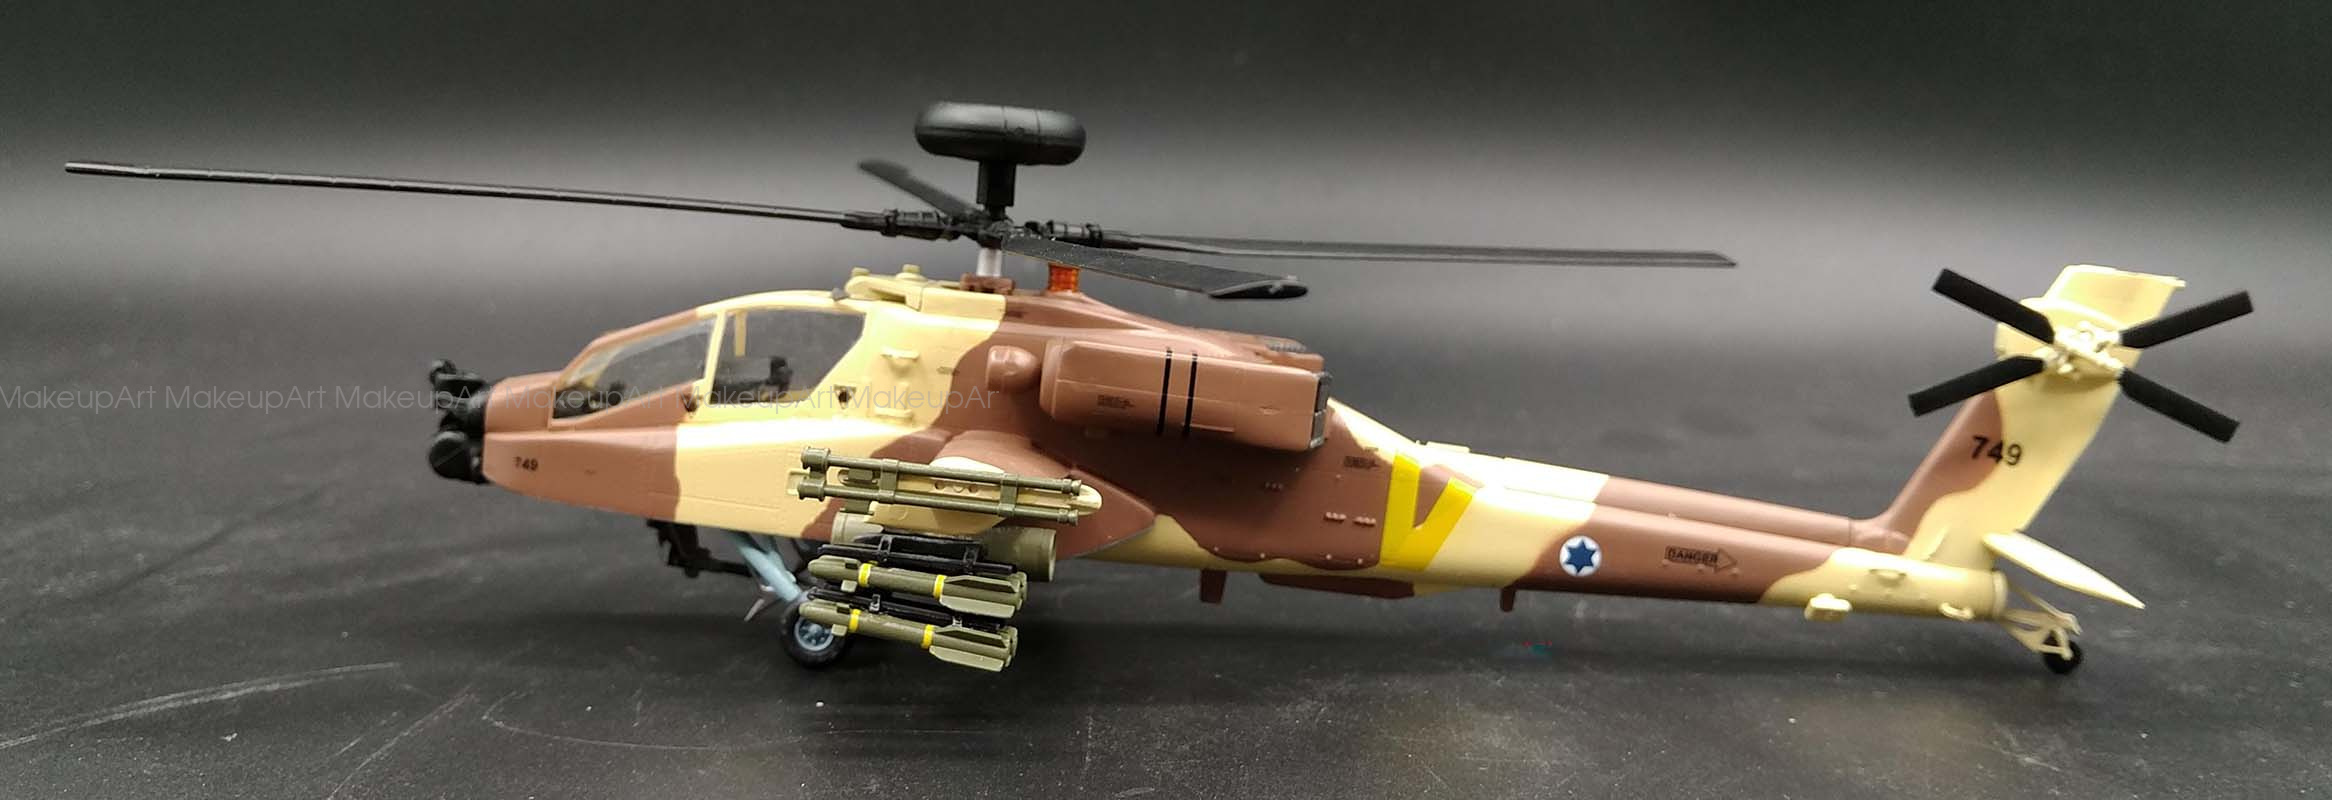 AH-64 Apache longbow Israel attack helicopter 1/72 diecast ...